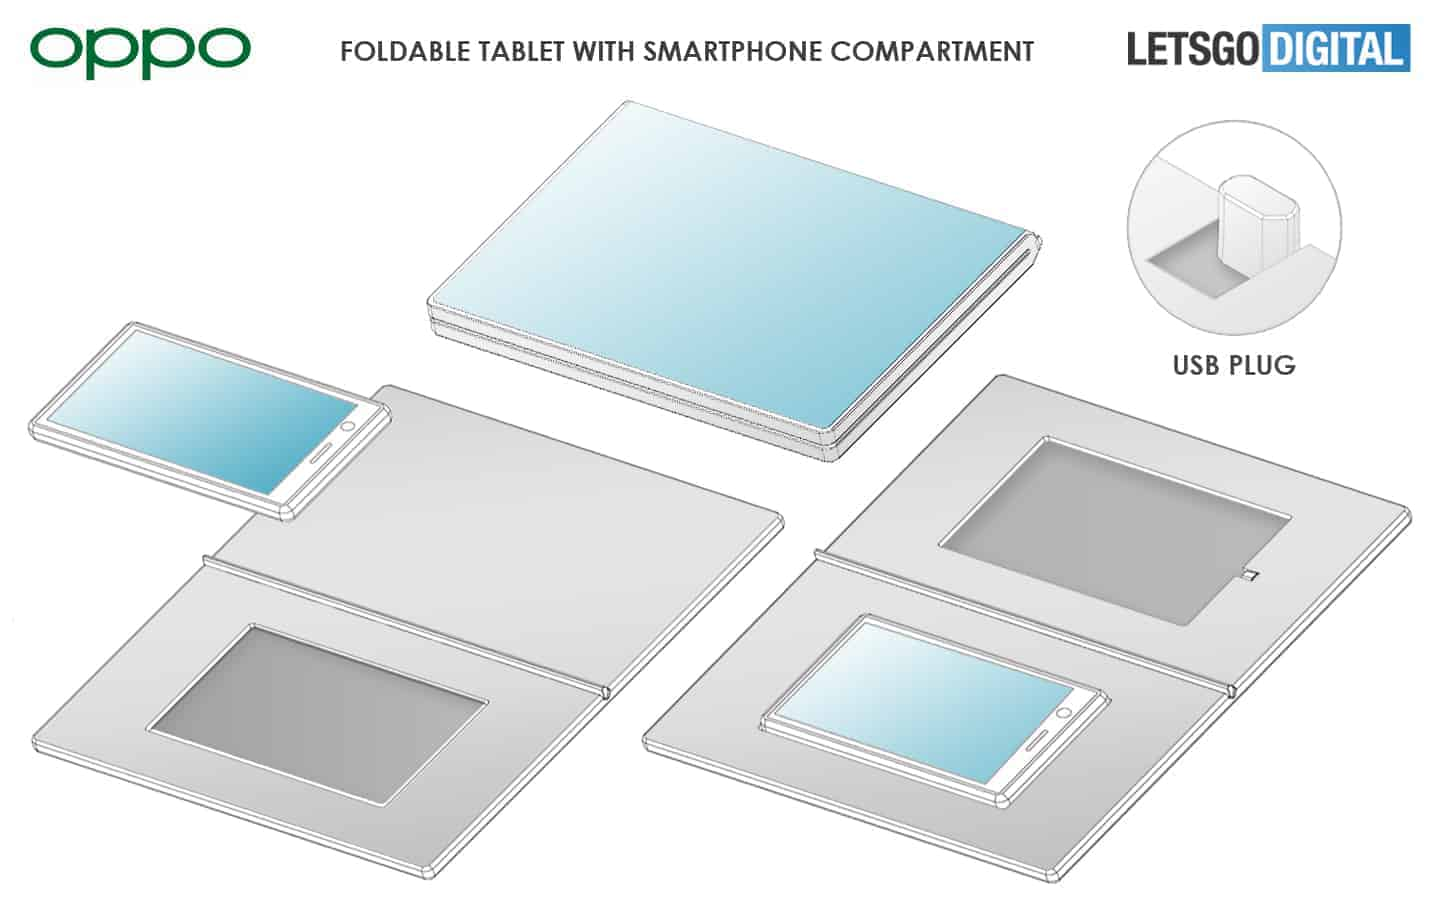 OPPO foldable tablet with smartphone dock patent 4